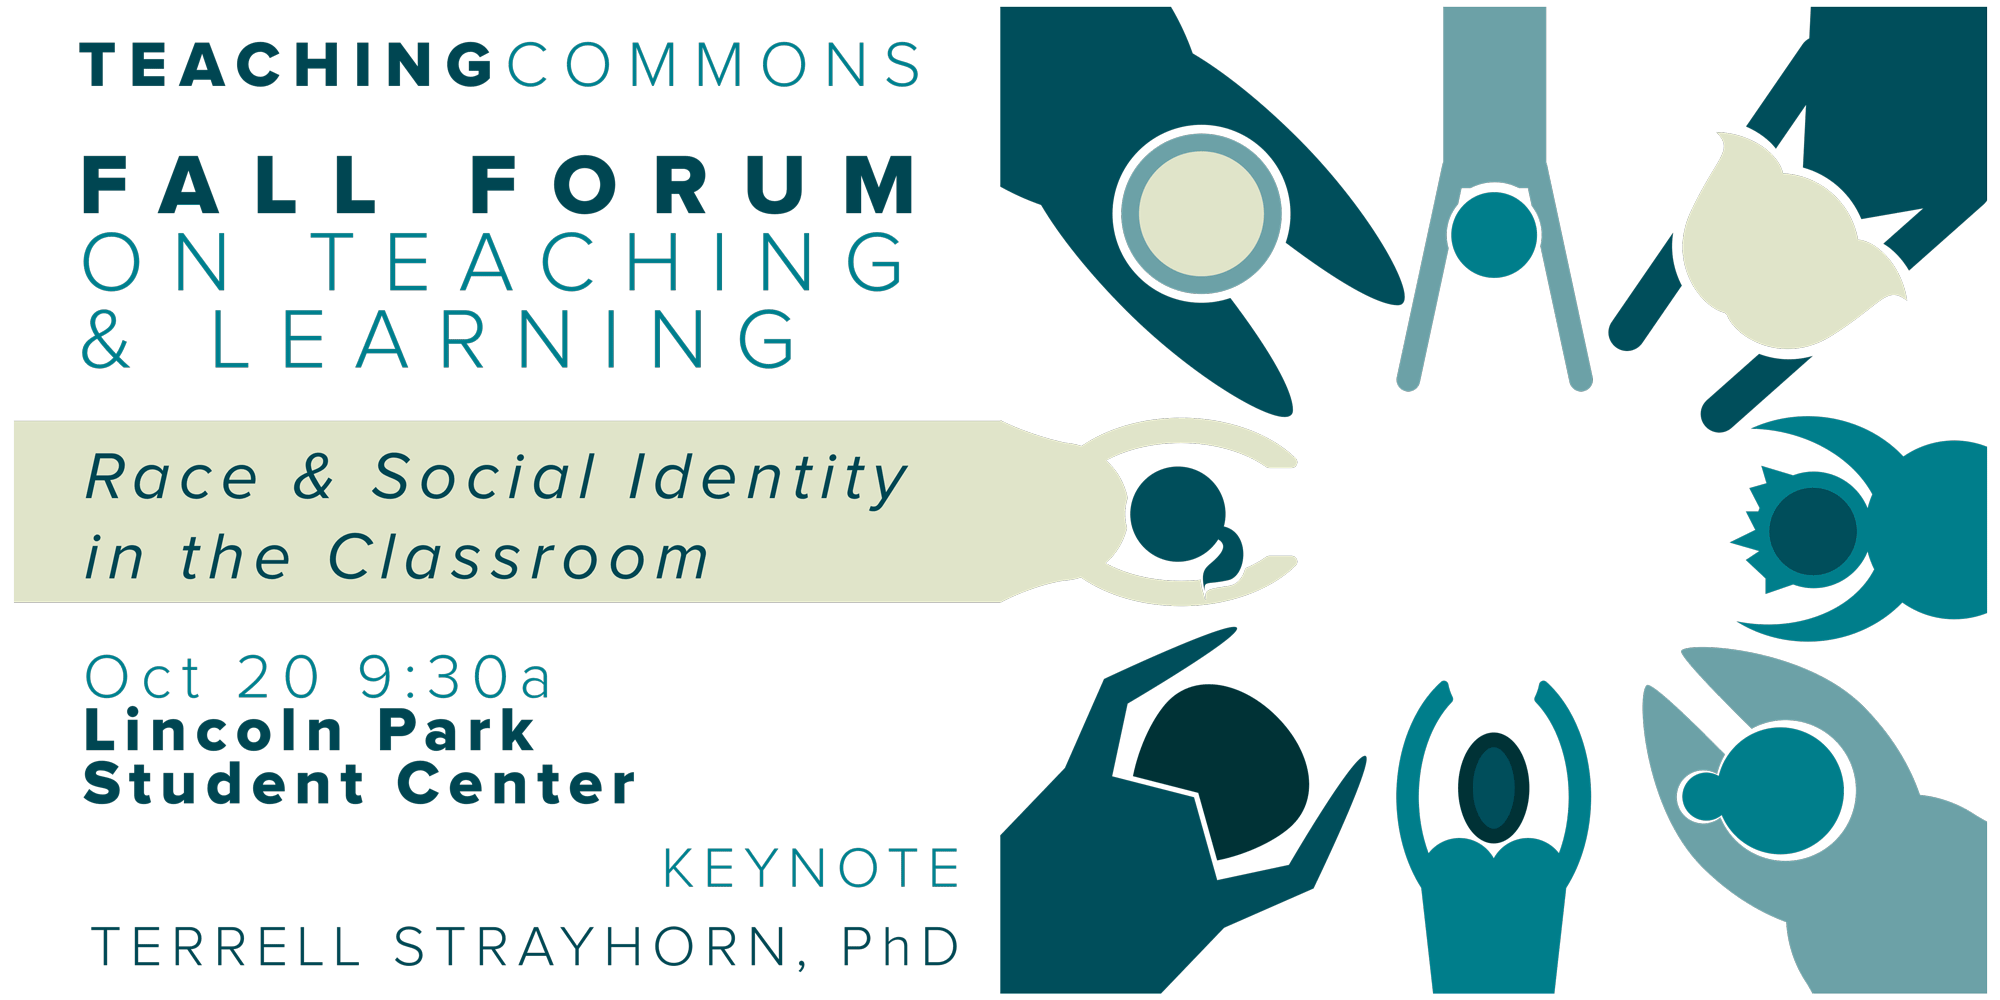 Teaching Commons Fall Forum on Teaching & Learning: Race and Social Identity in the Classroom. Oct 20th, 9:30am, LPC Stu Center